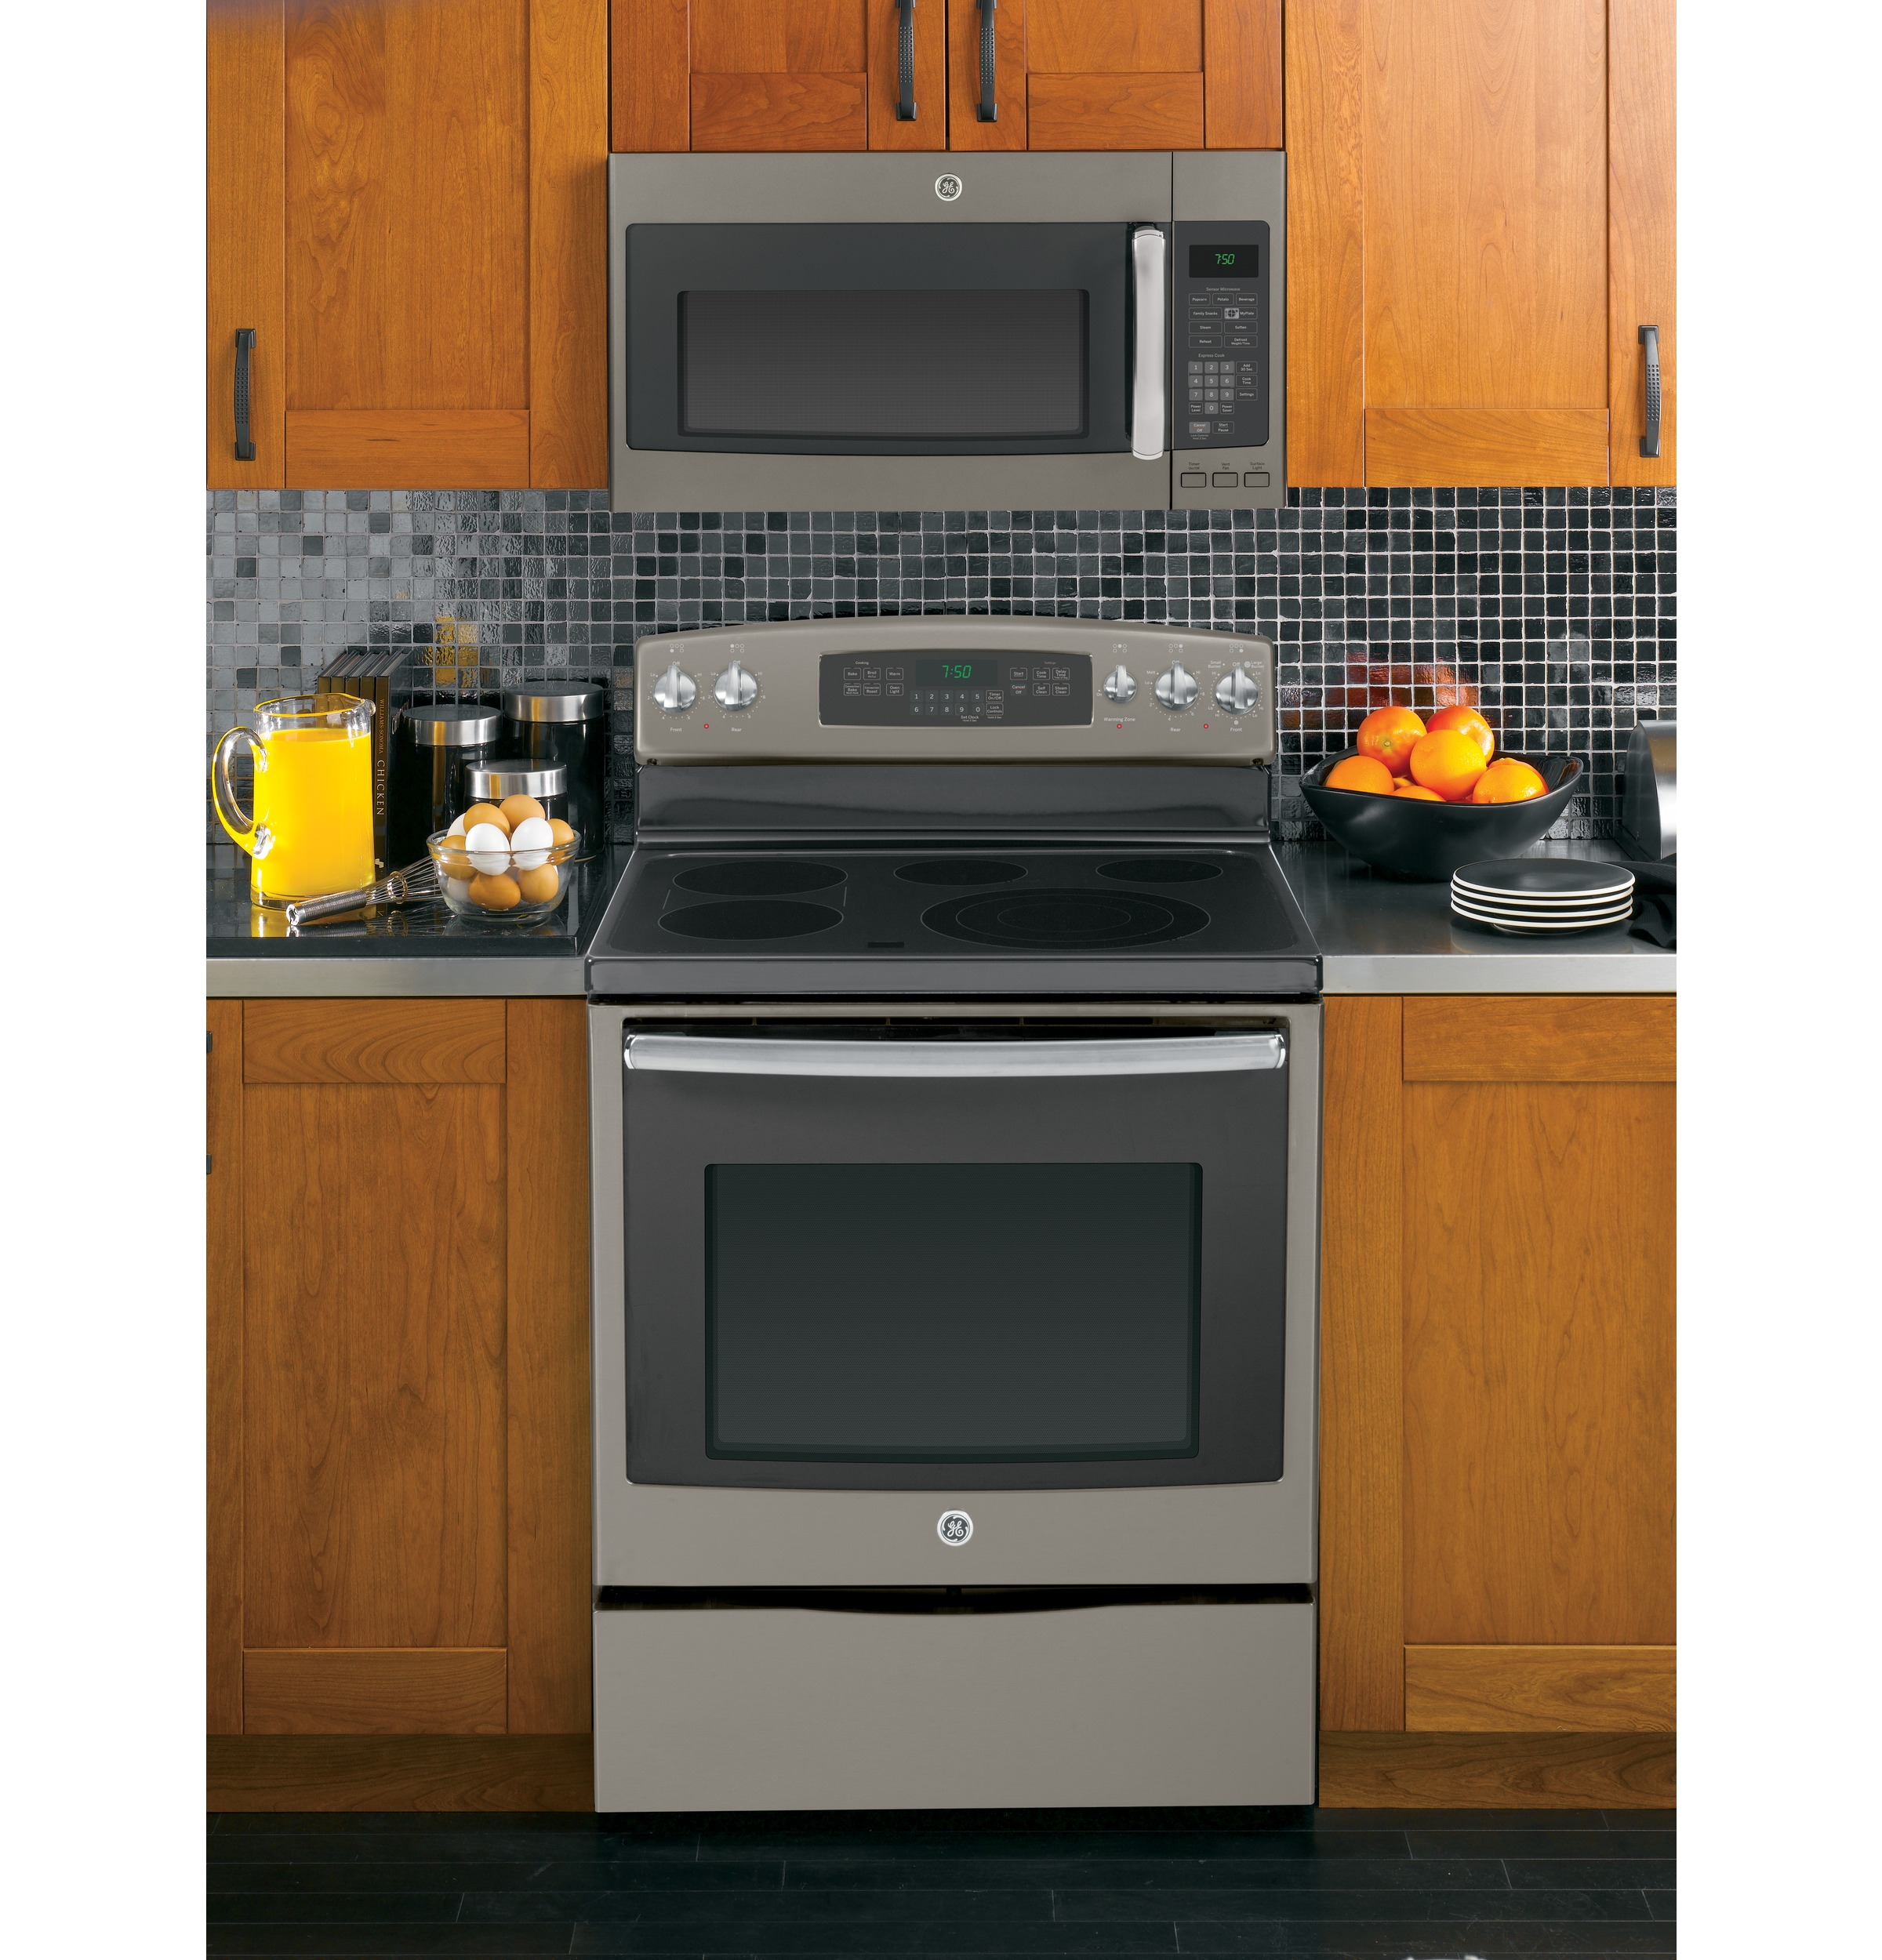 Home kitchen appliances microwaves over the range microwaves - Product Image Product Image Product Image